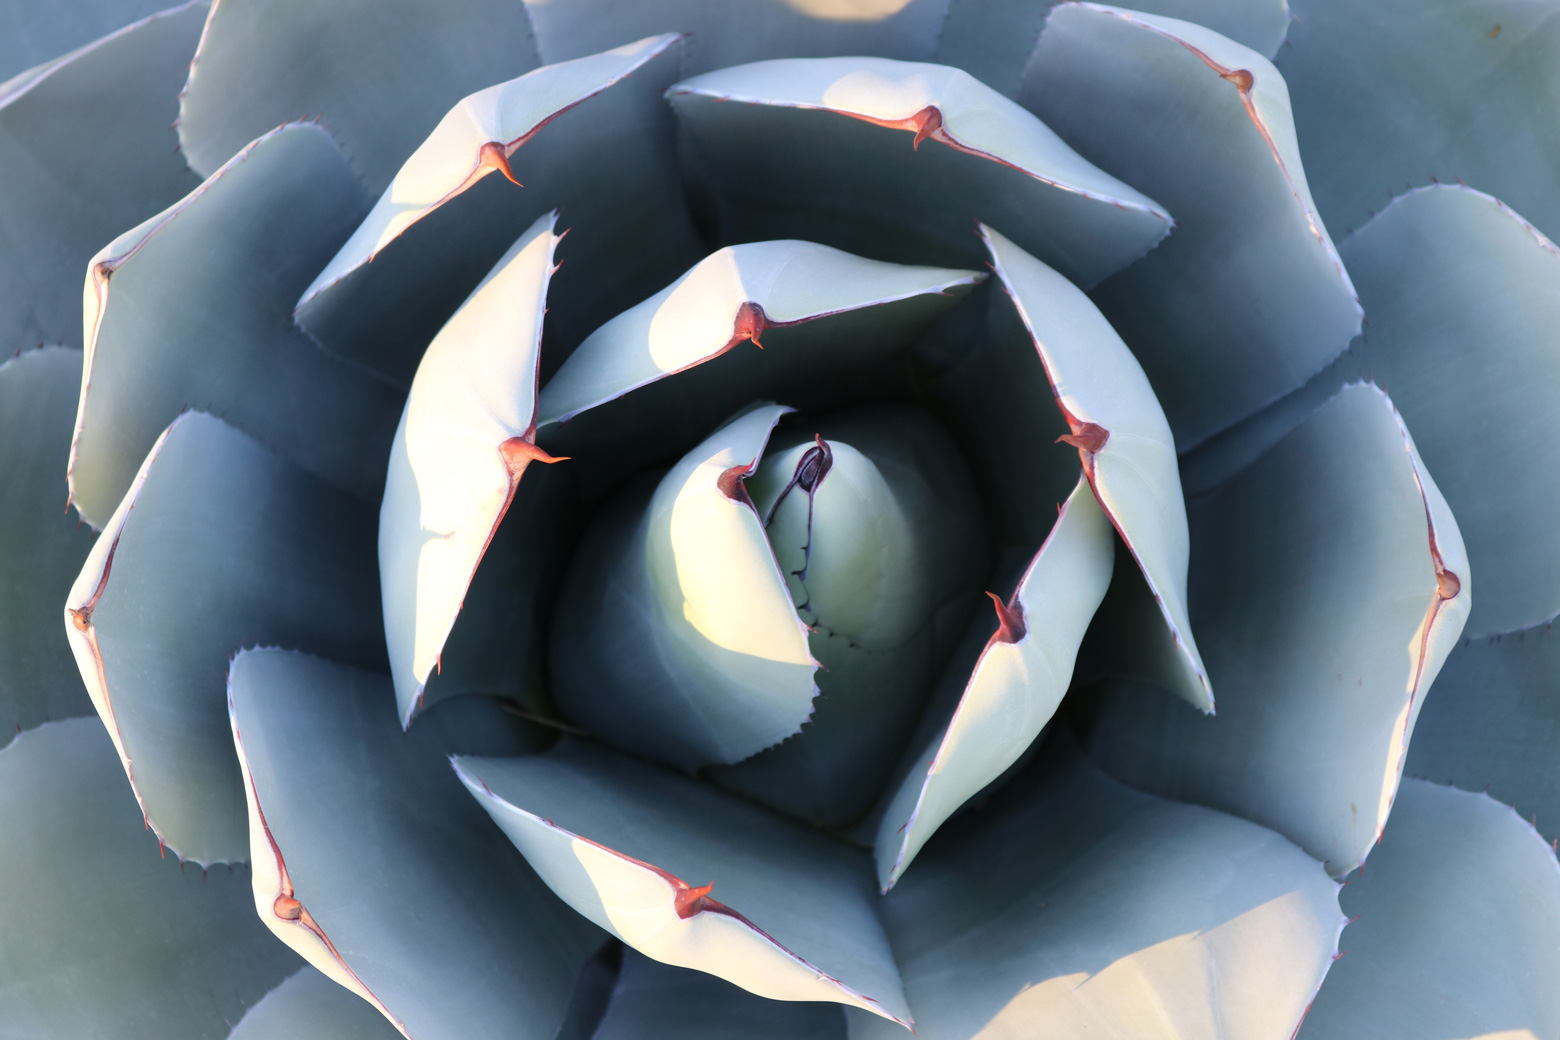 A view of the Artichoke Agave from above.